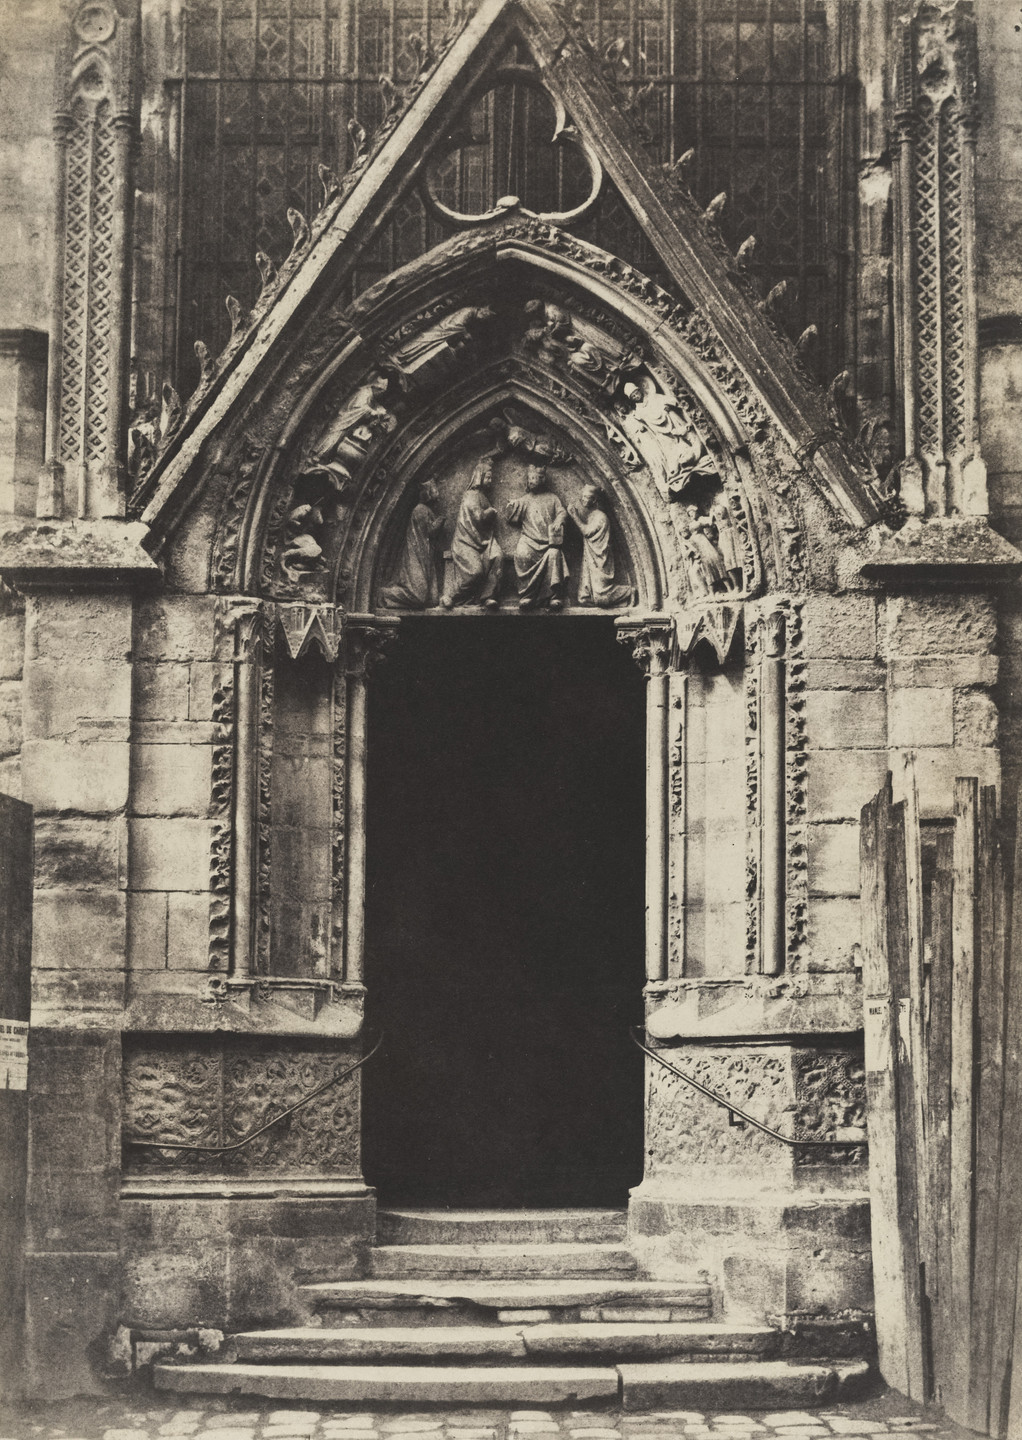 Henri Le Secq. The Red Door, Northern Façade of the Church of Notre Dame. c. 1851